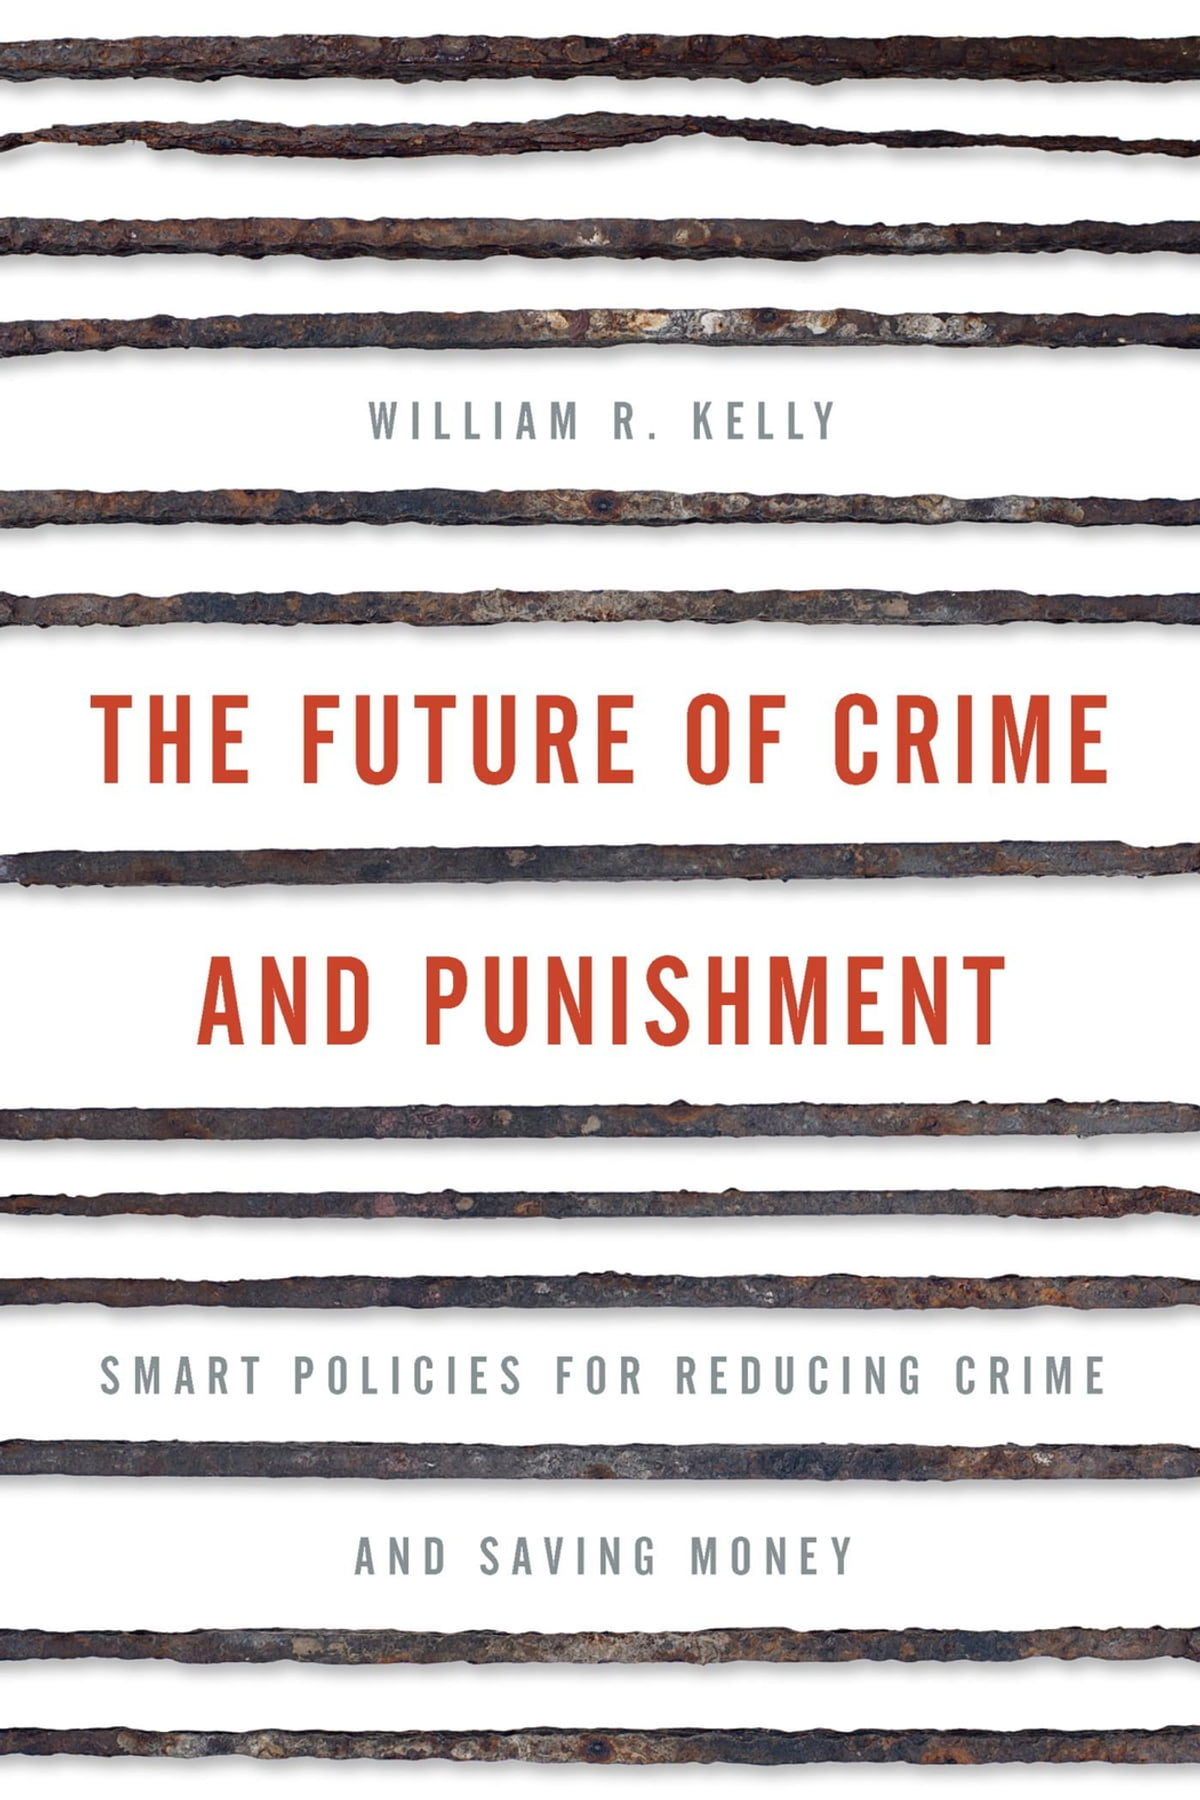 The future of crime and punishment ebook by william r kelly the future of crime and punishment ebook by william r kelly 9781442264823 rakuten kobo fandeluxe Image collections